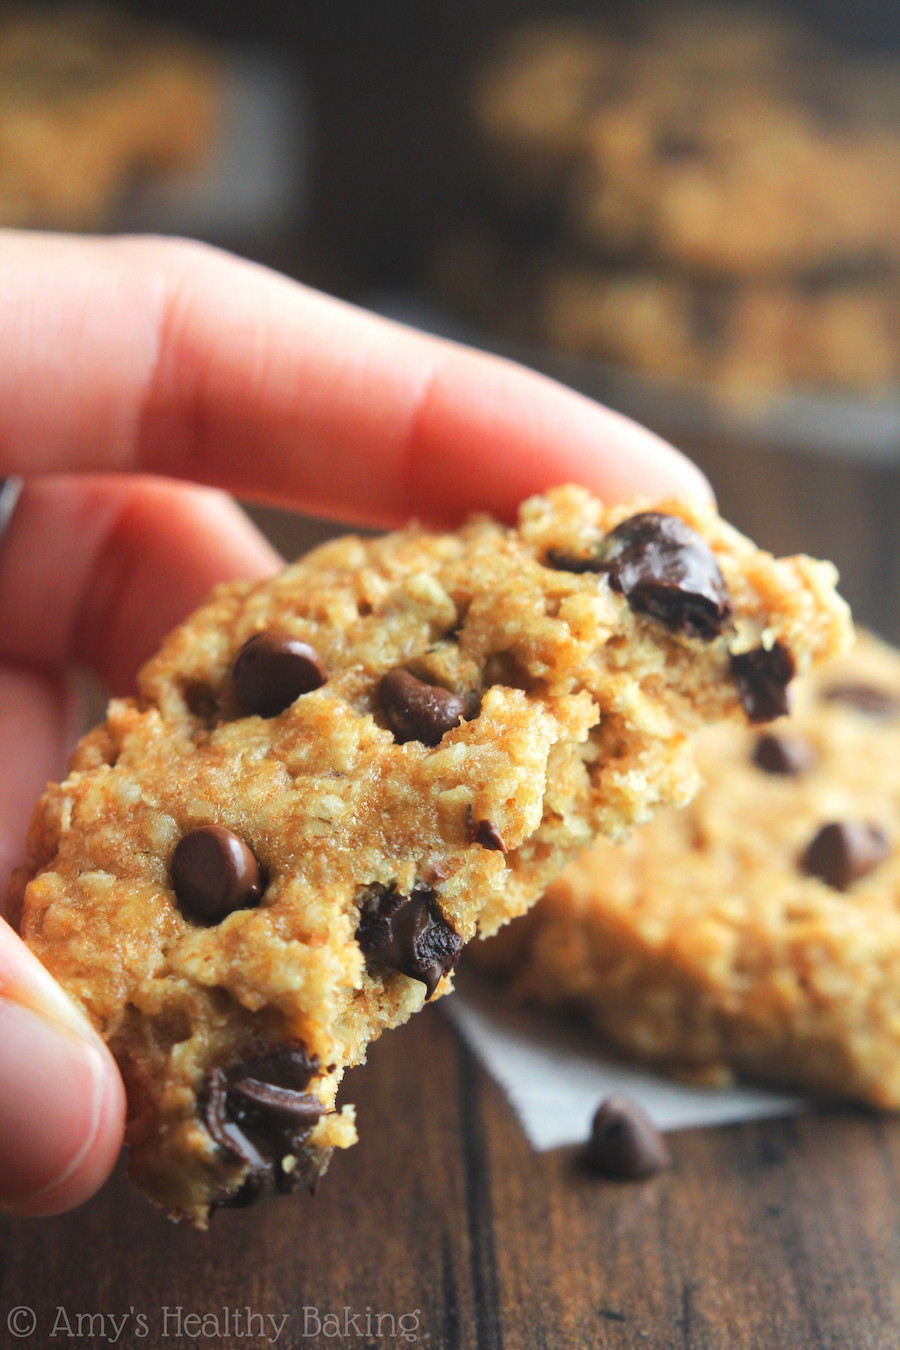 Healthy Peanut Butter Oatmeal Chocolate Chip Cookies  Chocolate Chip Peanut Butter Oatmeal Cookies Recipe Video